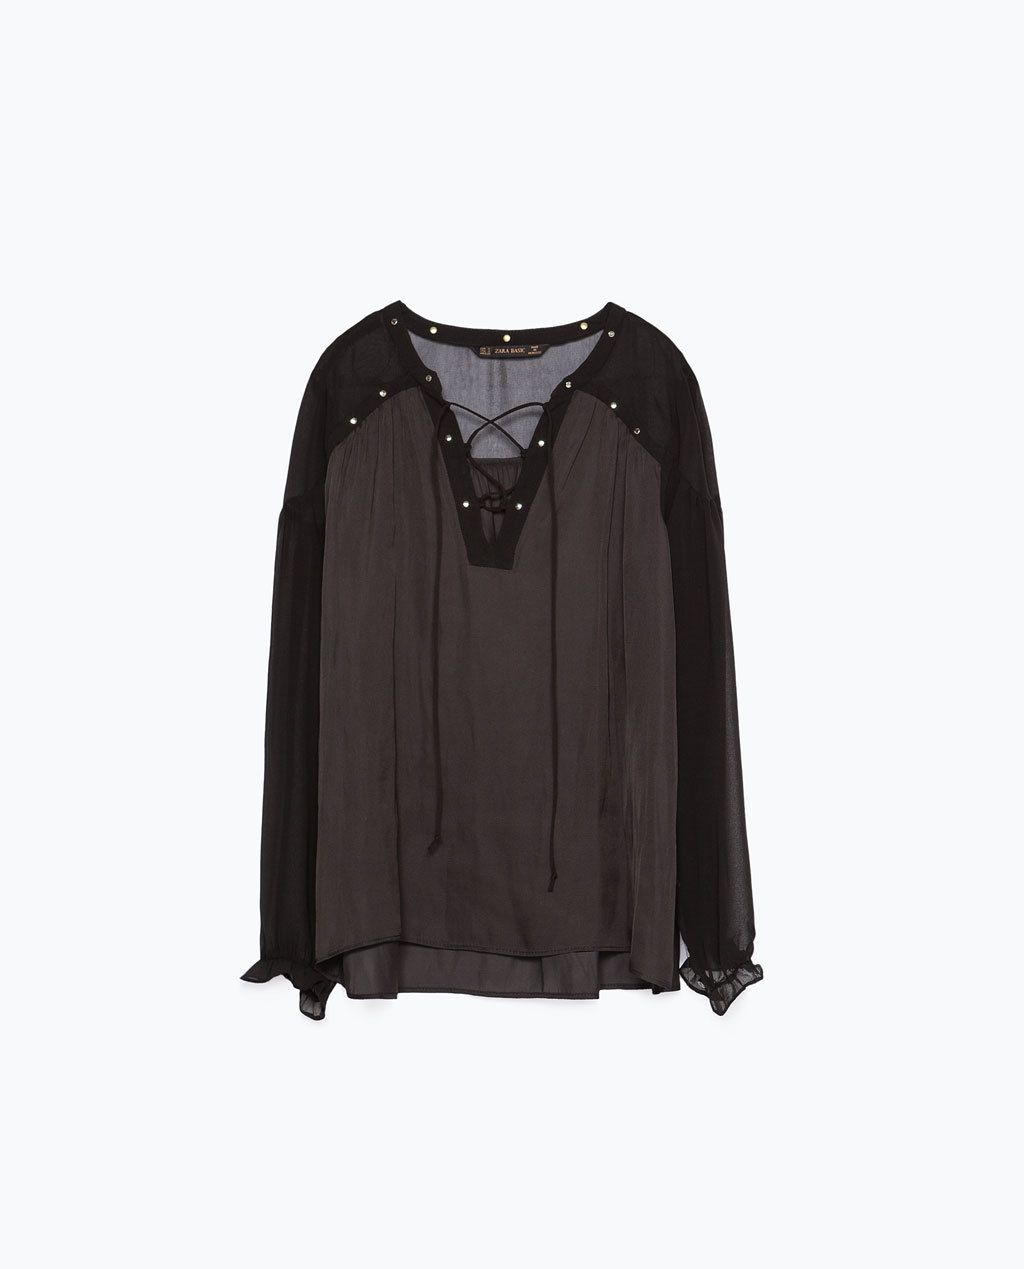 Studded Satin Blouse - neckline: v-neck; pattern: plain; style: blouse; predominant colour: black; occasions: casual, evening; length: standard; fit: loose; sleeve length: long sleeve; sleeve style: standard; texture group: sheer fabrics/chiffon/organza etc.; pattern type: fabric; season: s/s 2015; wardrobe: basic